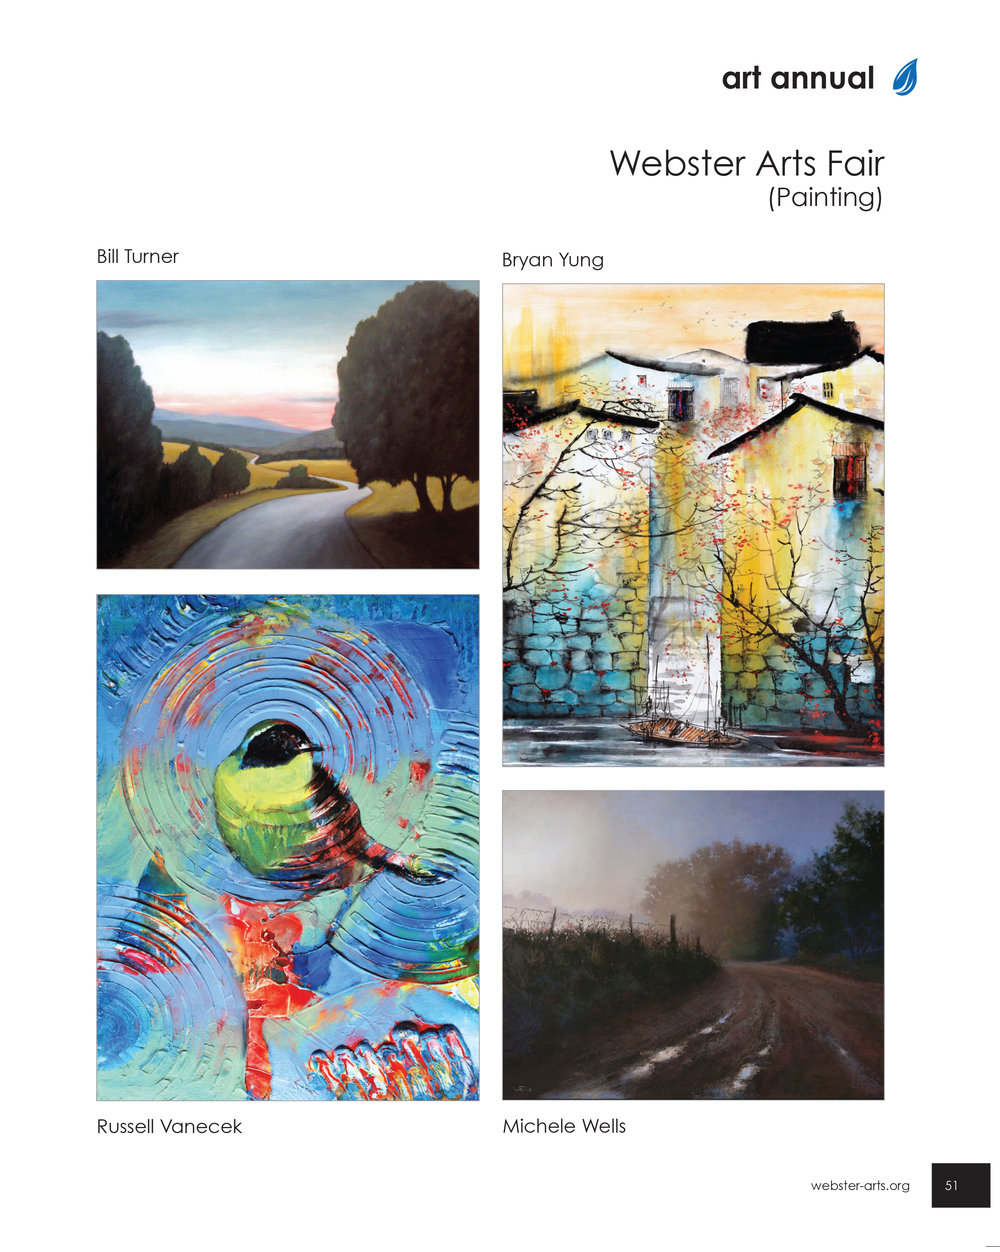 Art Annual, Webster Arts Fair